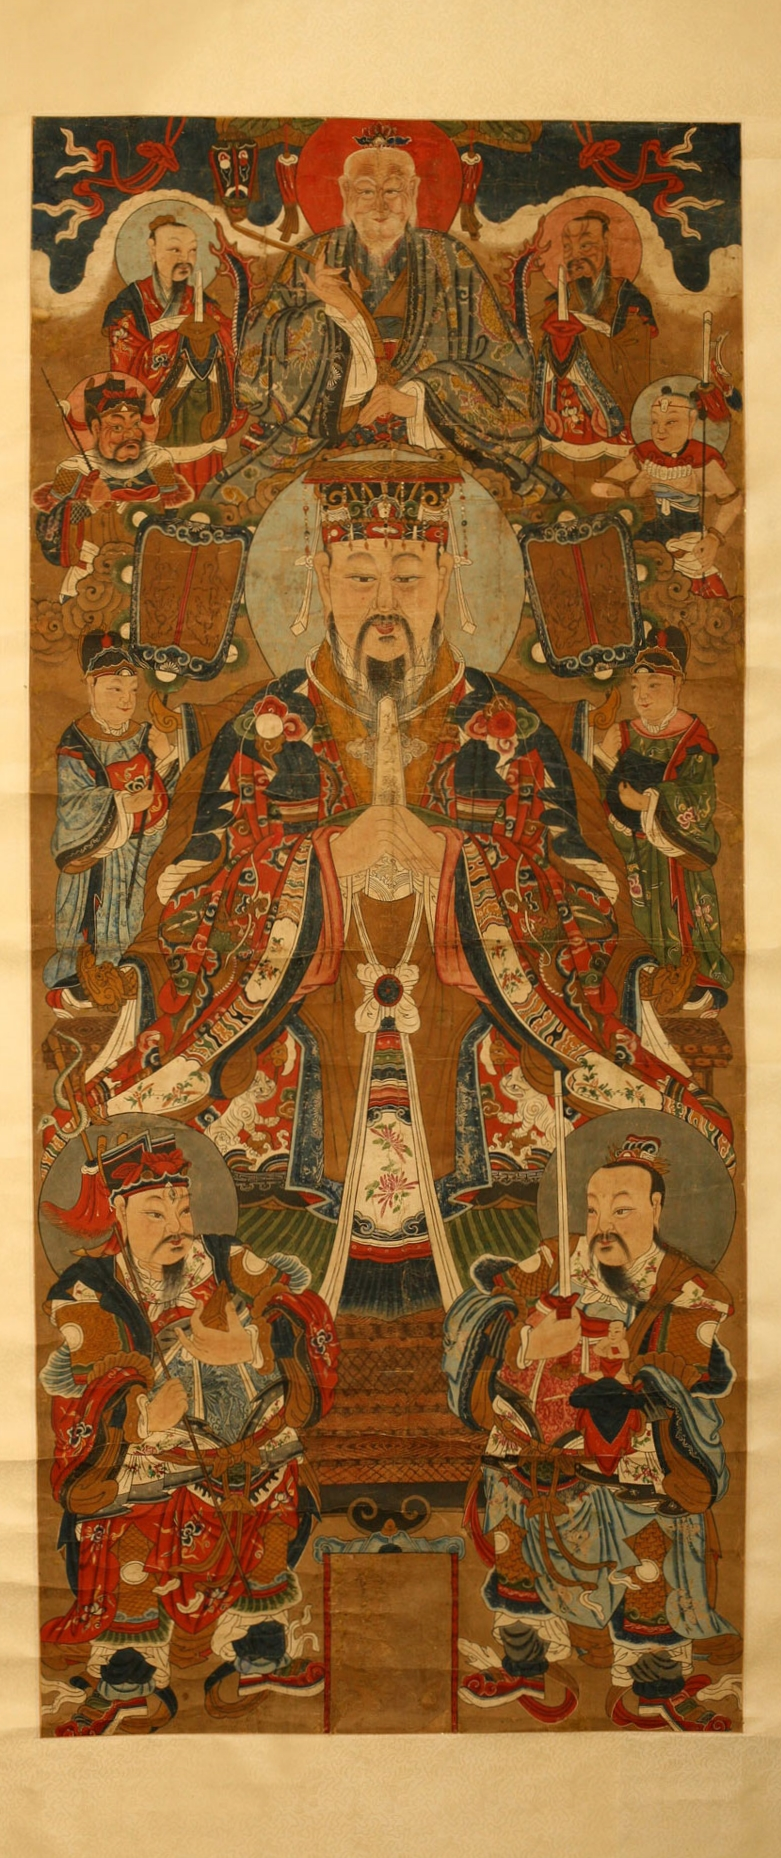 Taoist painting, China, 19th century.